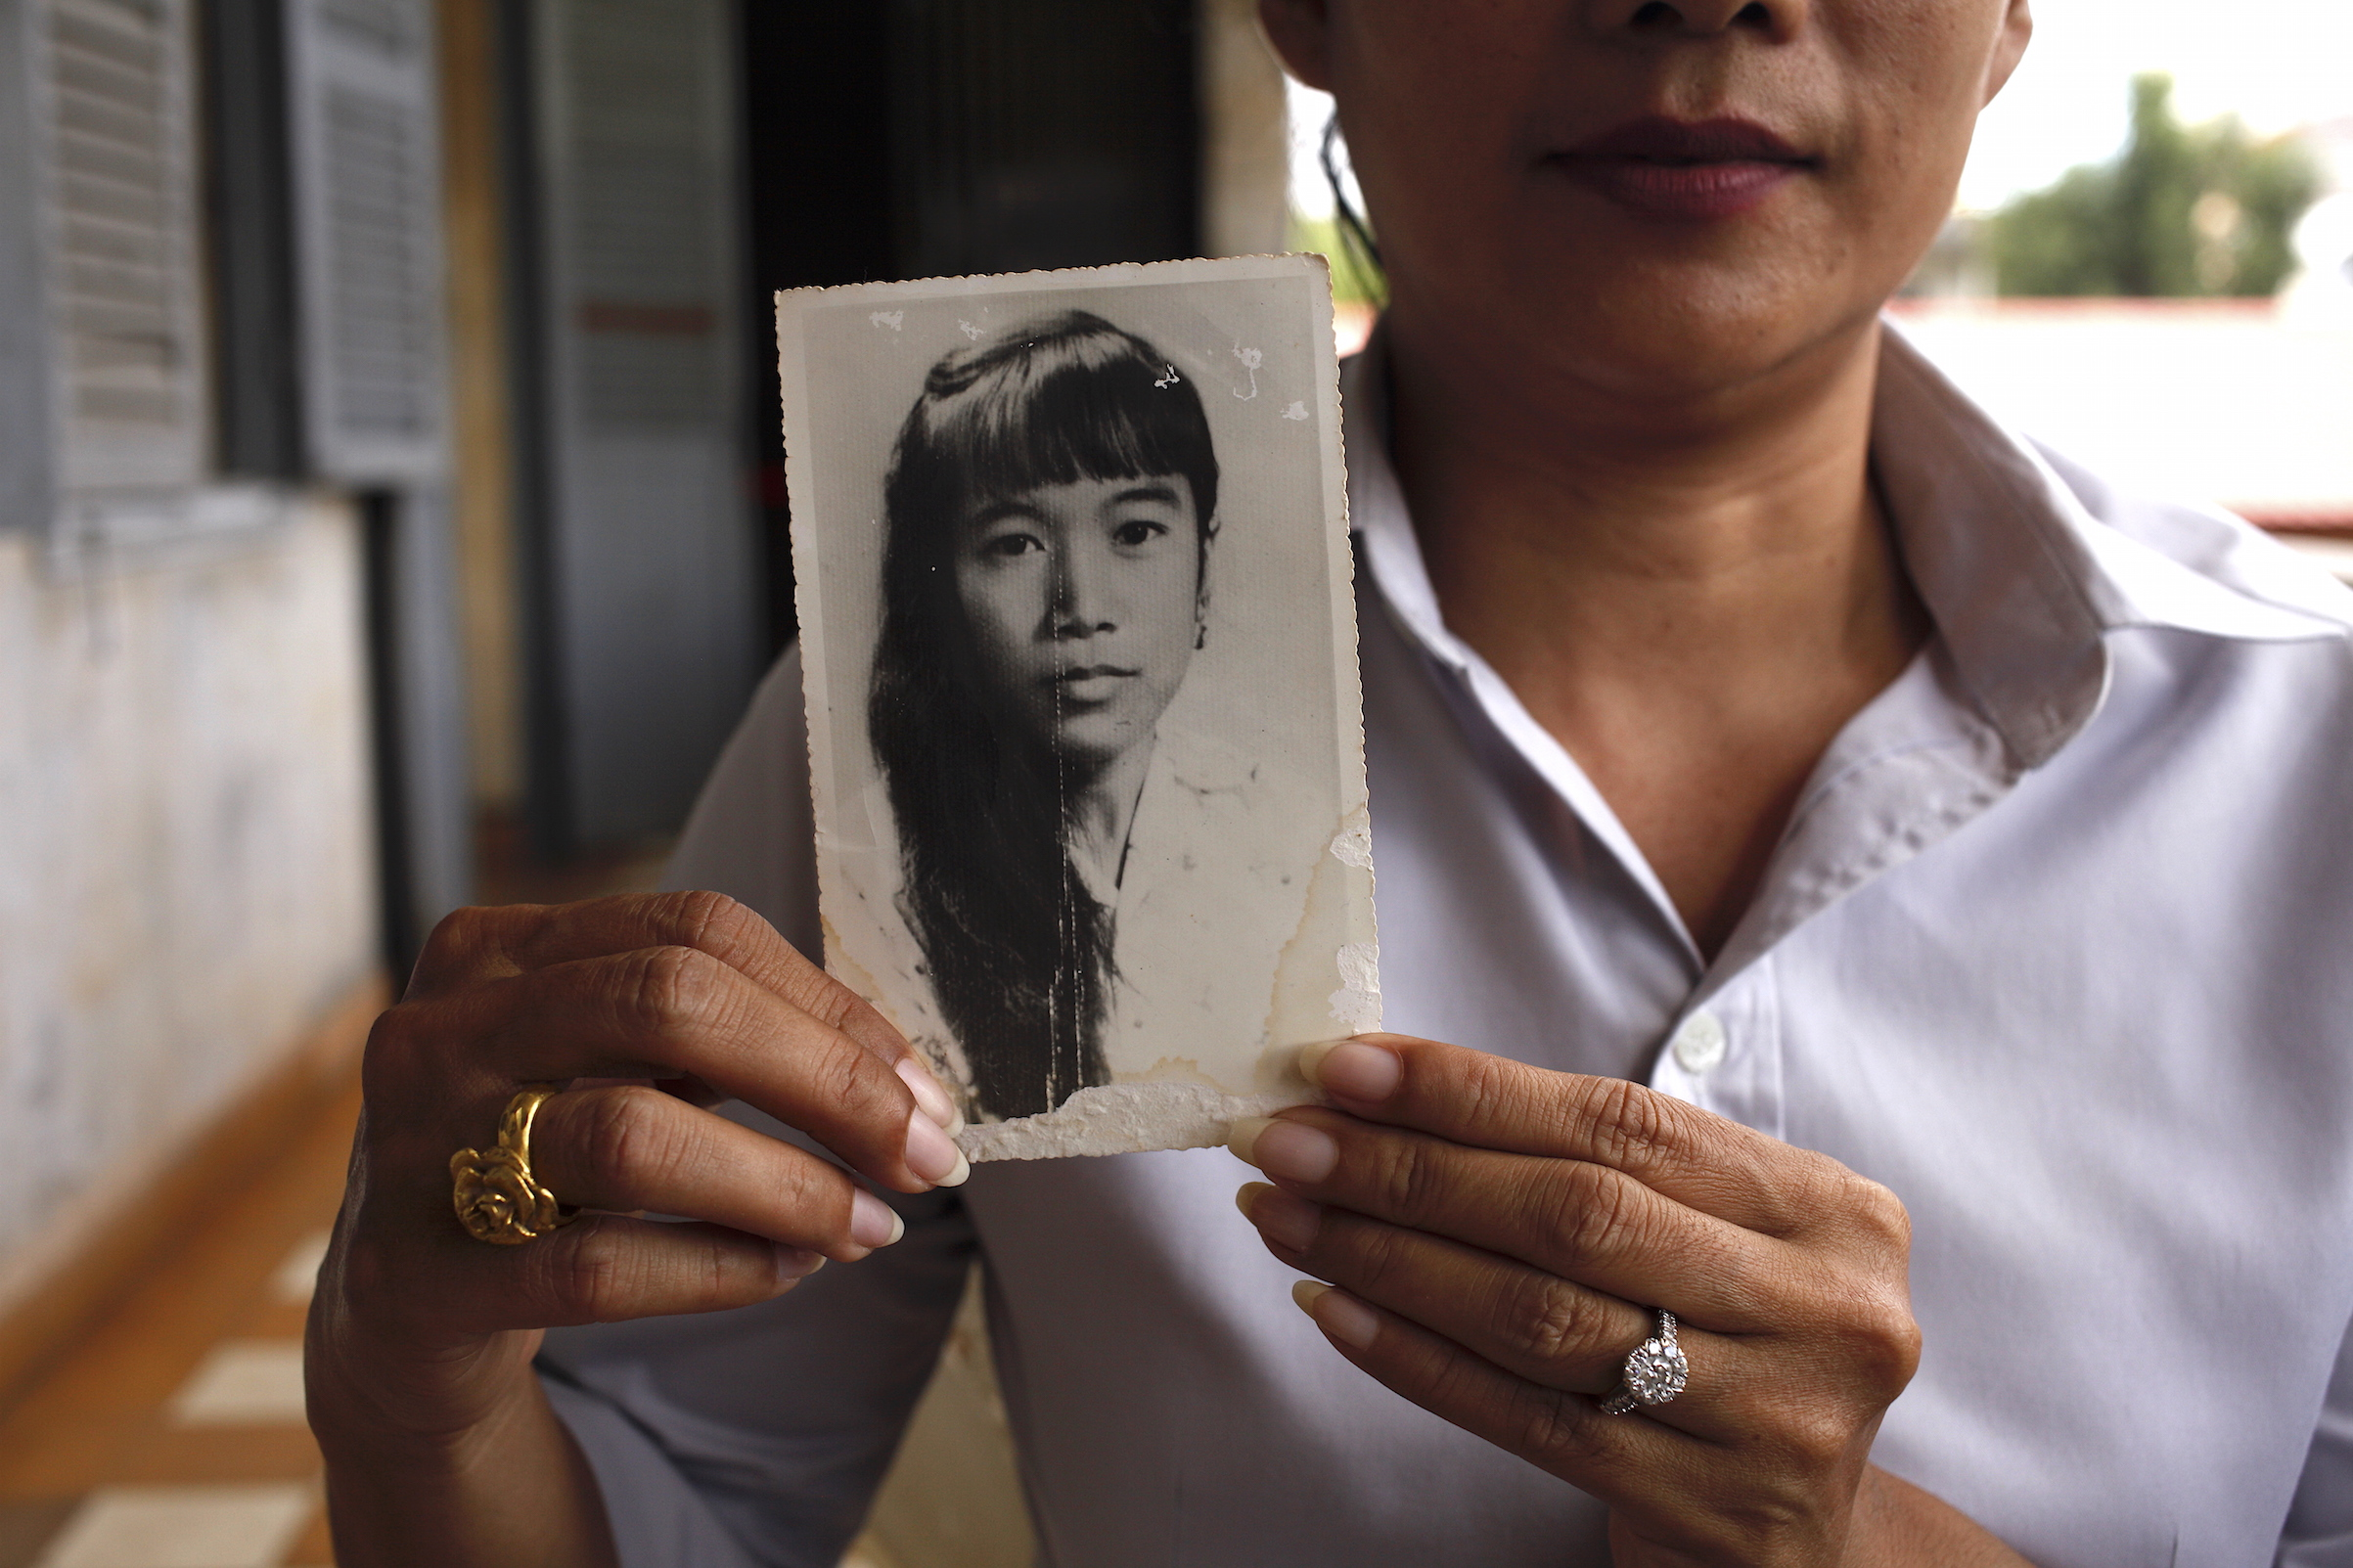 Chheng Samin was born under a pagoda shortly after the fall of Phnom Penh. She holds a picture of her mother, Chheng Samit, who survived the Khmer Rouge but died young. She now works at Tuol Sleng.